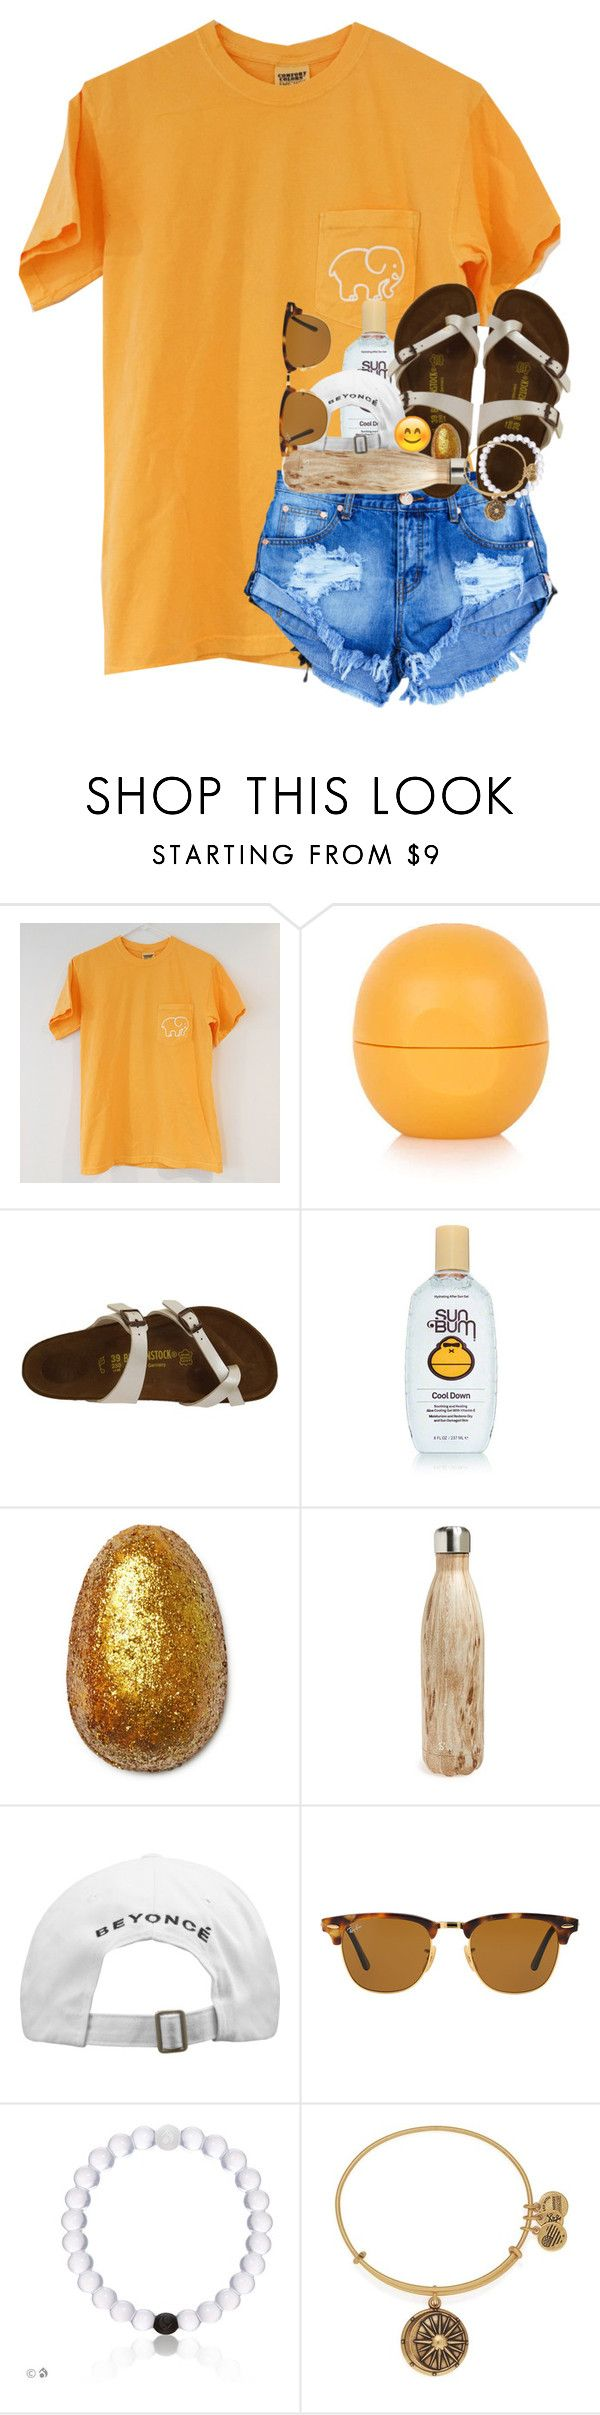 """""""Account refresh!"""" by evedriggers ❤ liked on Polyvore featuring Topshop, Birkenstock, Sun Bum, S'well, Ray-Ban and Alex and Ani"""